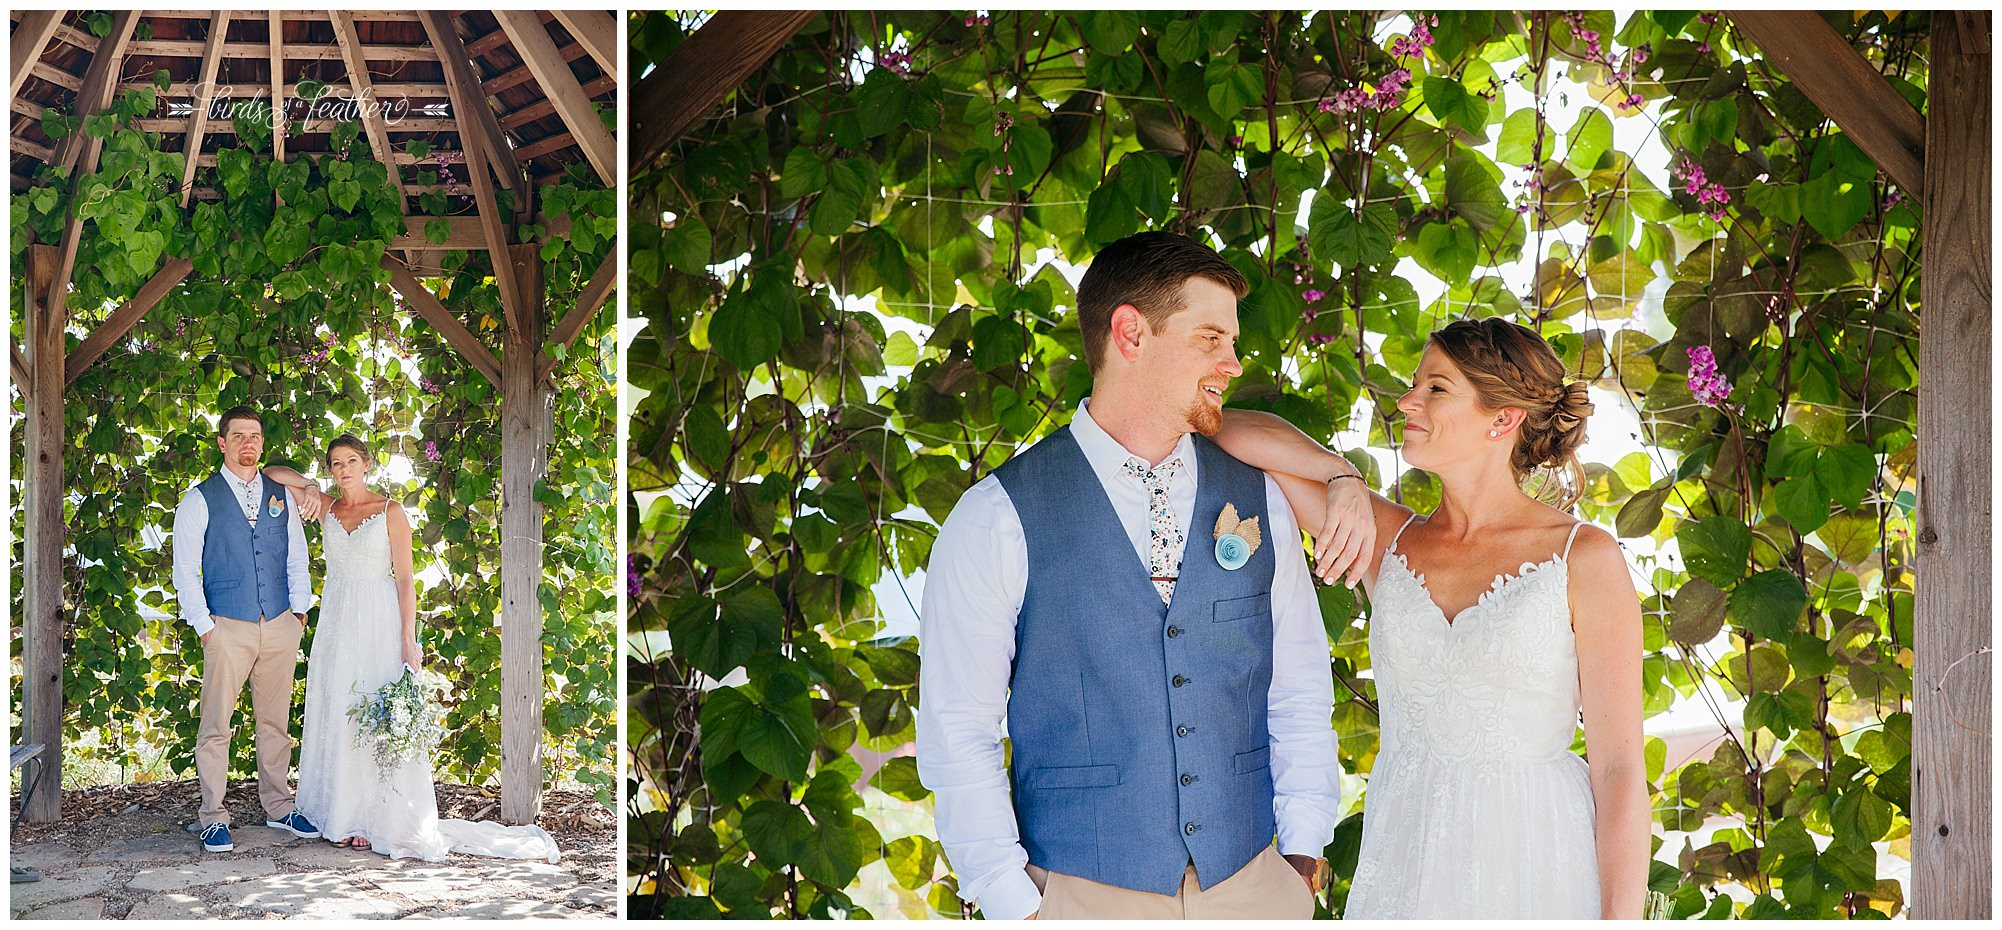 Birds of a Feather Photography Rodale Institute Kutztown Pa Wedding Photographer 18